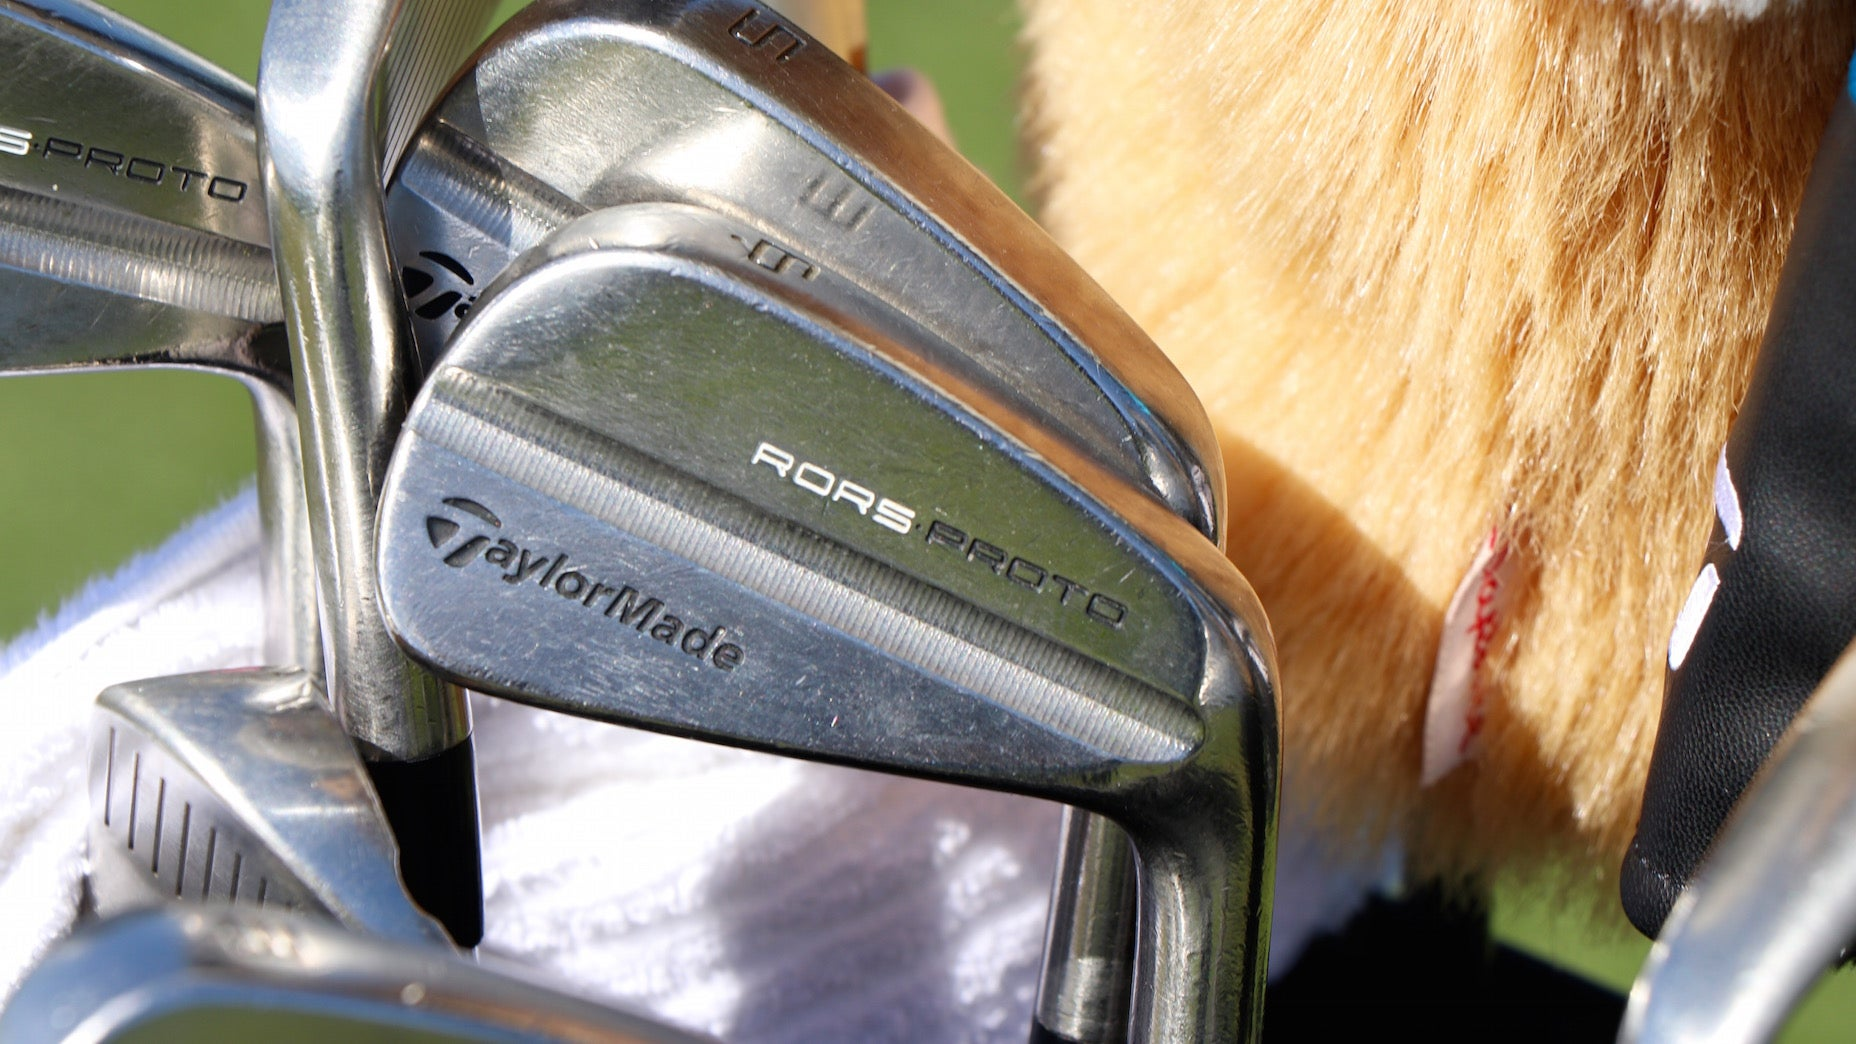 Rory McIlroy's custom TaylorMade irons at the 2021 CJ Cup.